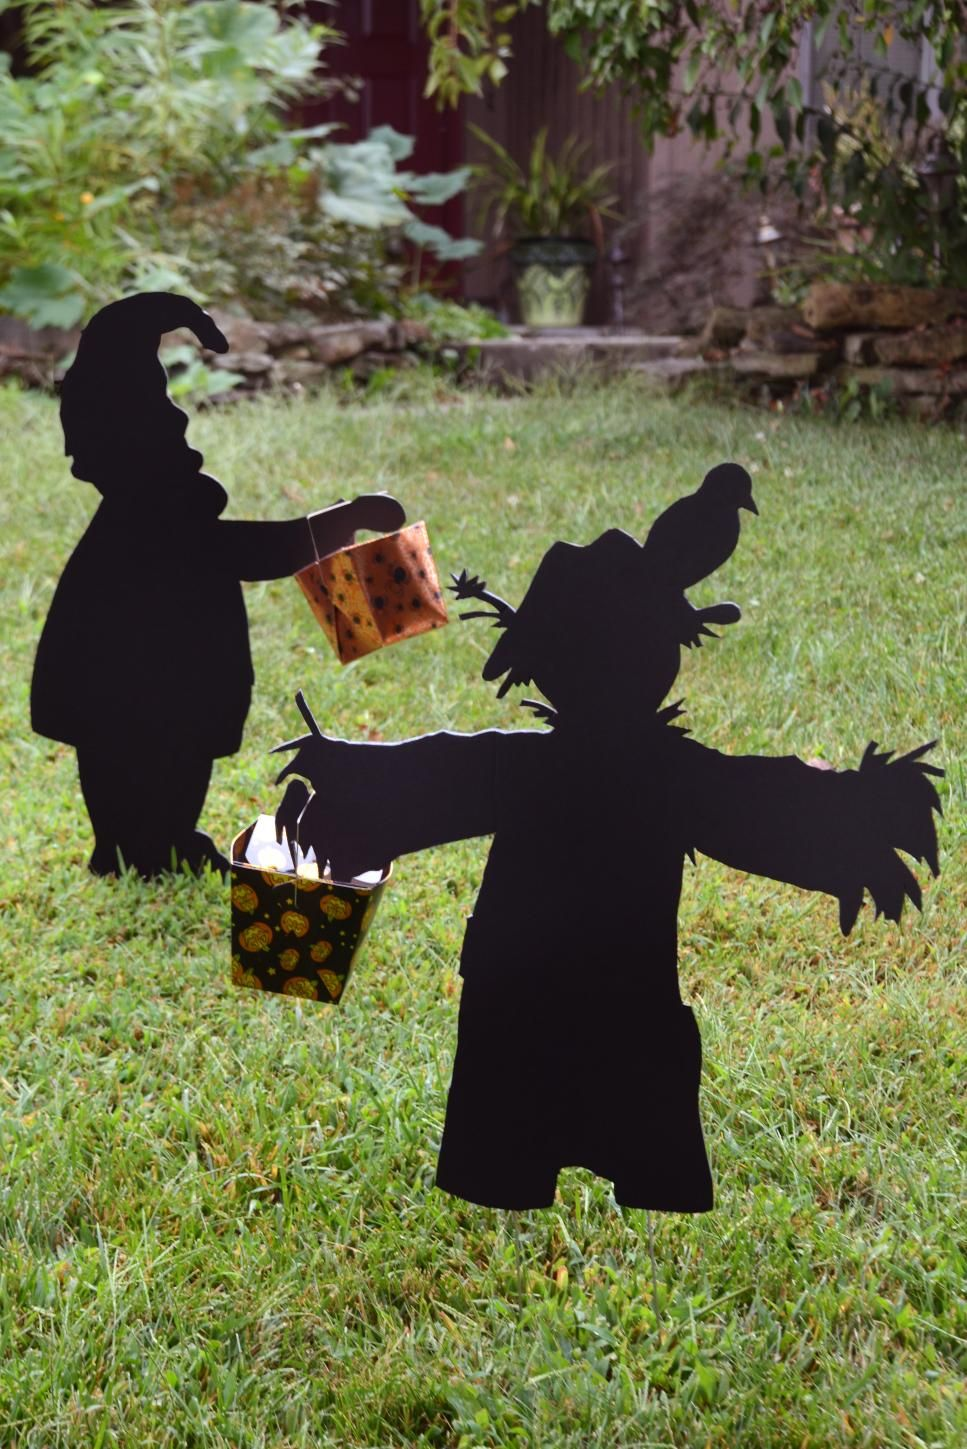 Garden Silhouettes for Halloween Decorating Silhouettes, Halloween - Halloween House Decorating Ideas Outside